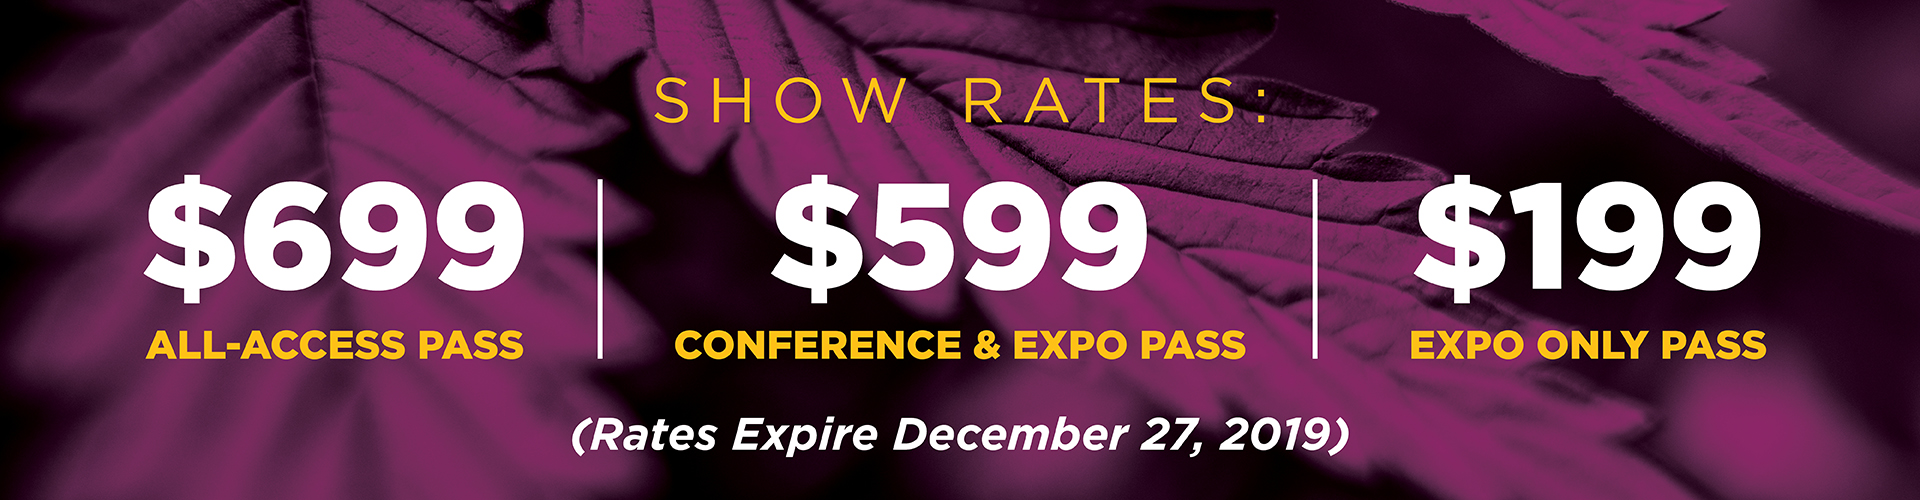 Cannabis Conference Pricing Slide